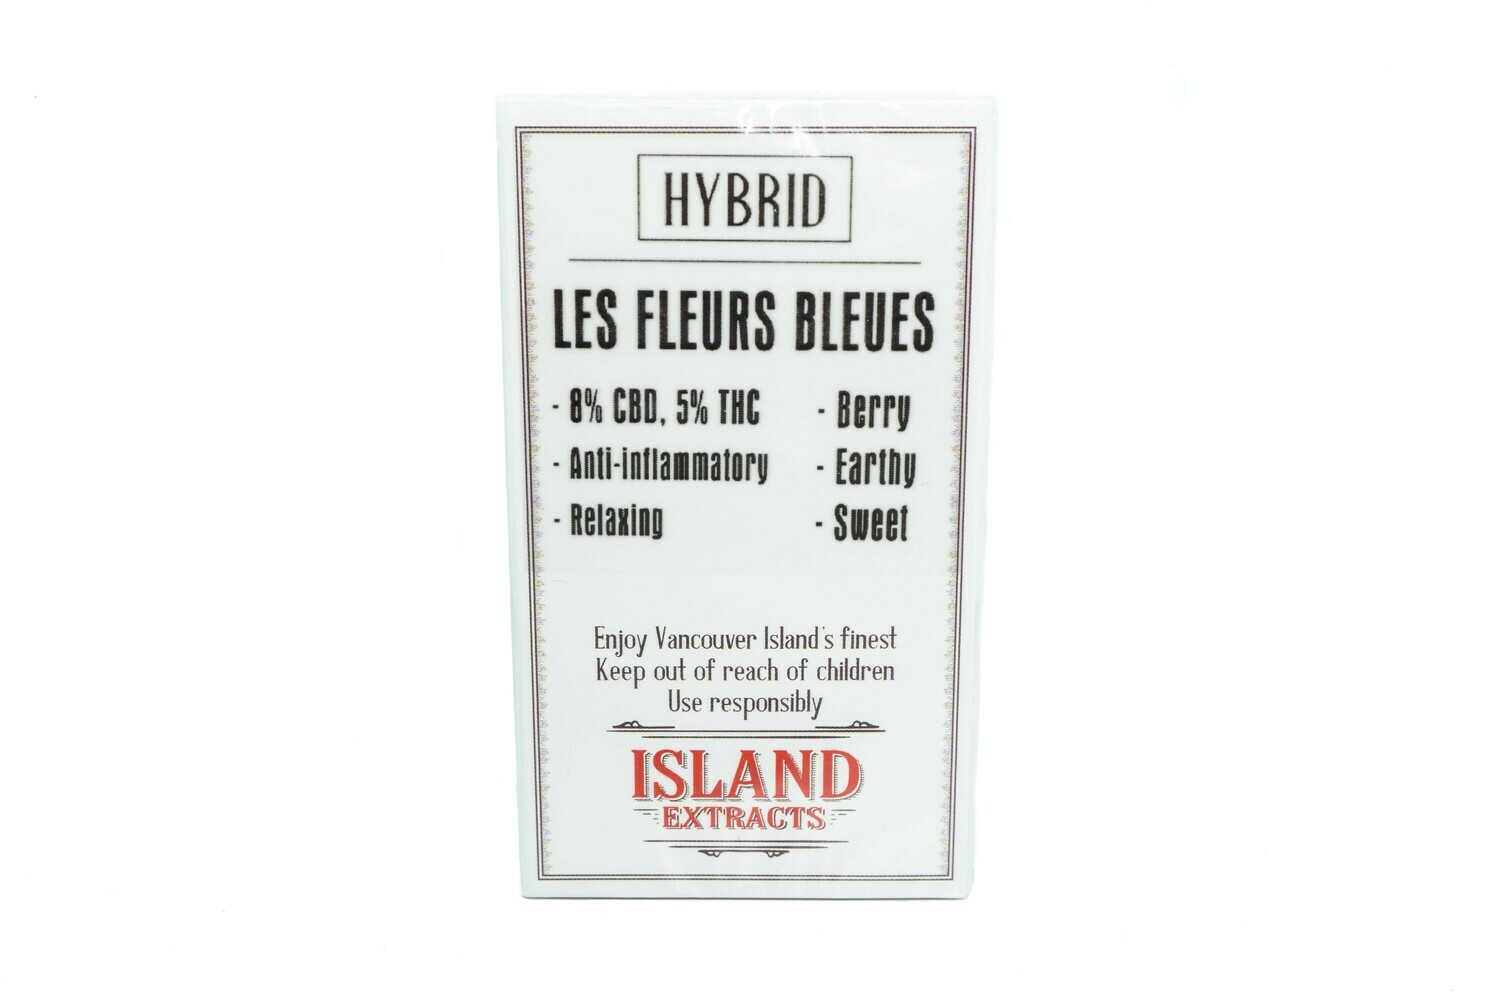 Les Fleurs Bleues CBD (Hybrid) Premium Preroll (5/Pack) By Island Extracts